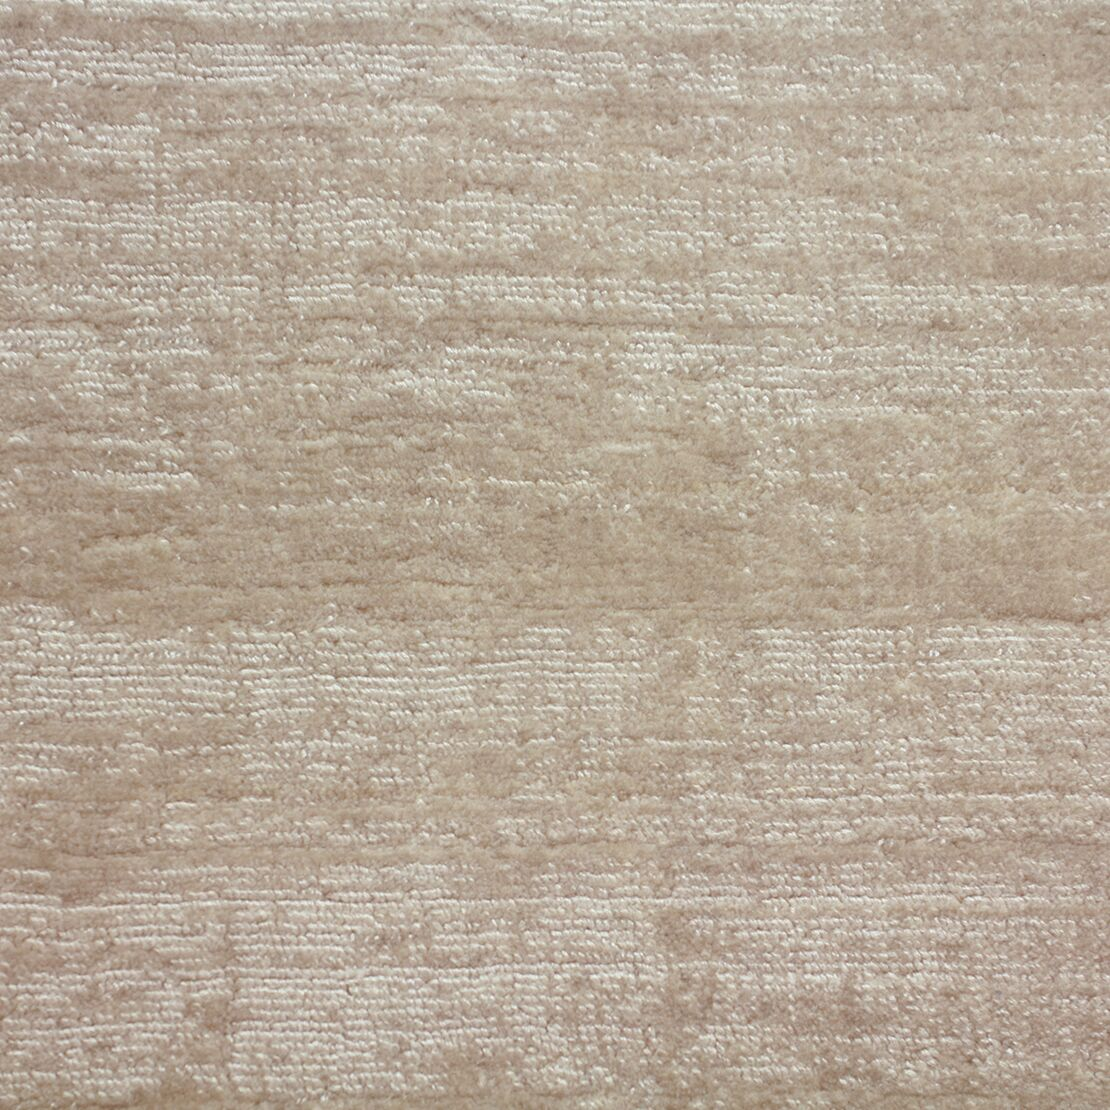 Staple Hill Hand-Woven Wool Almond Area Rug Size: Rectangle 8' x 10'